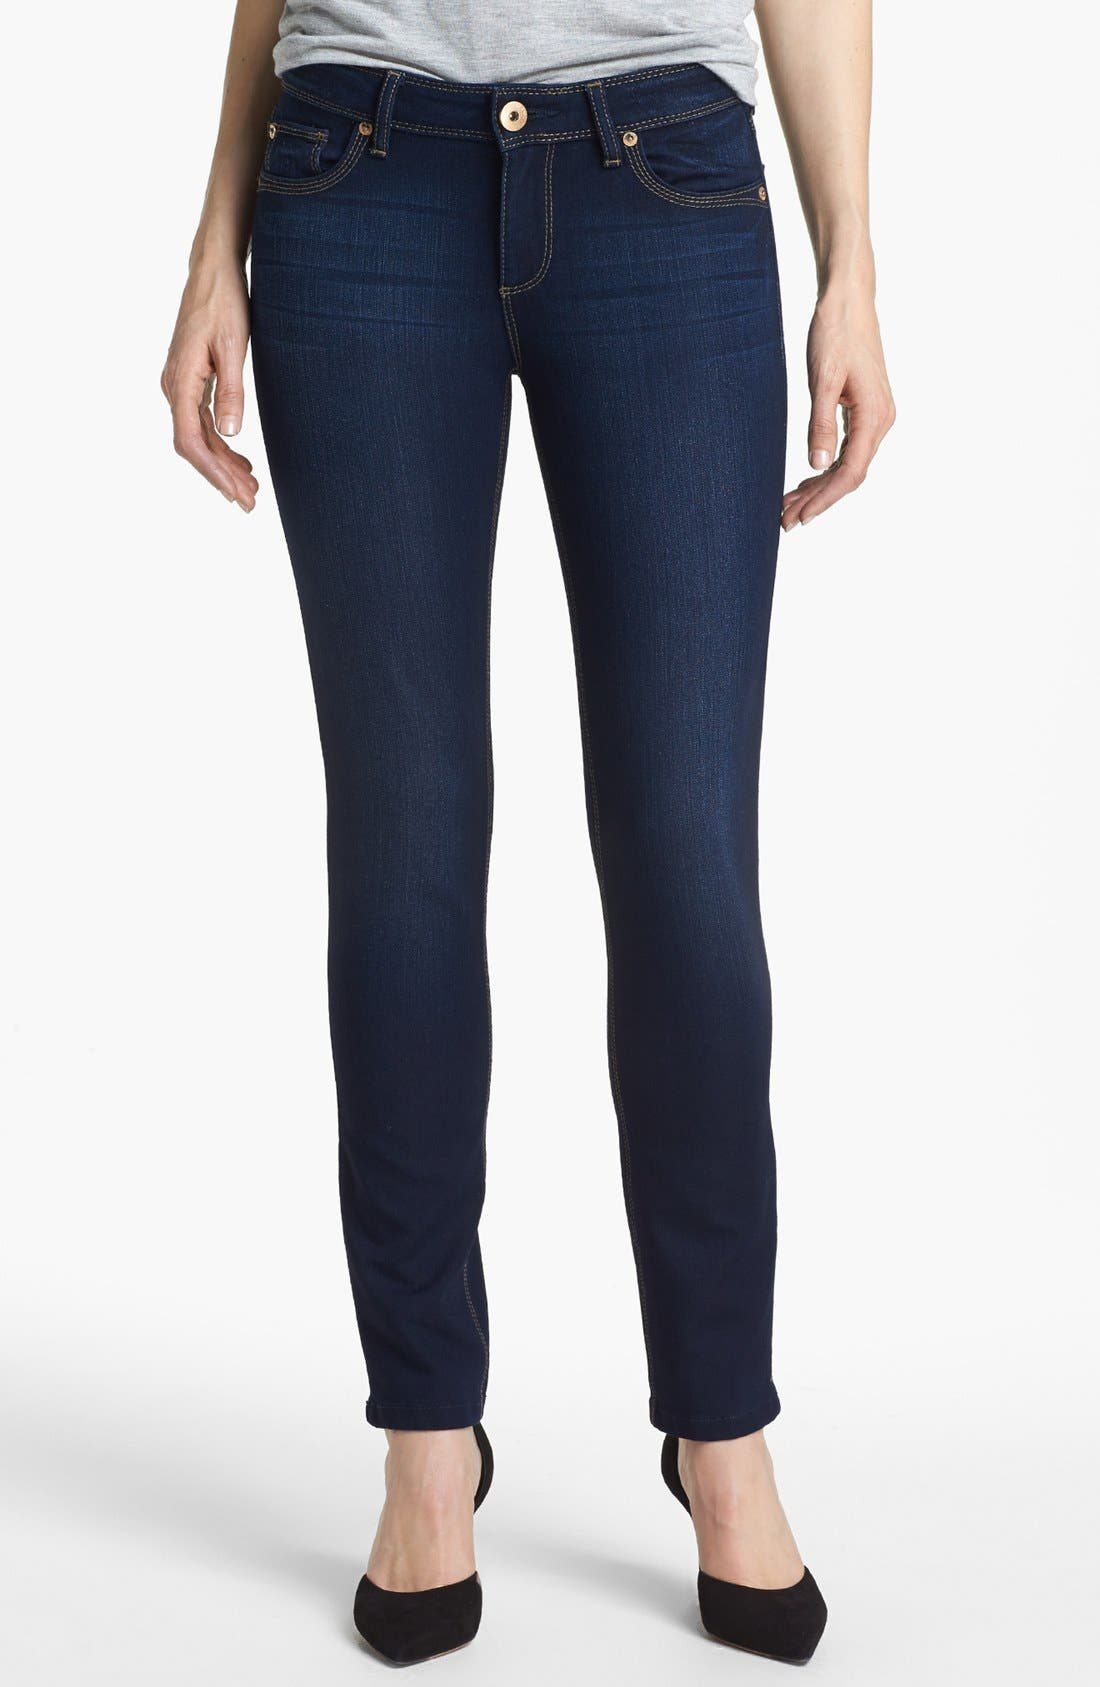 Main Image - DL1961 'Angel' Ankle Skinny Jeans (Oslo)